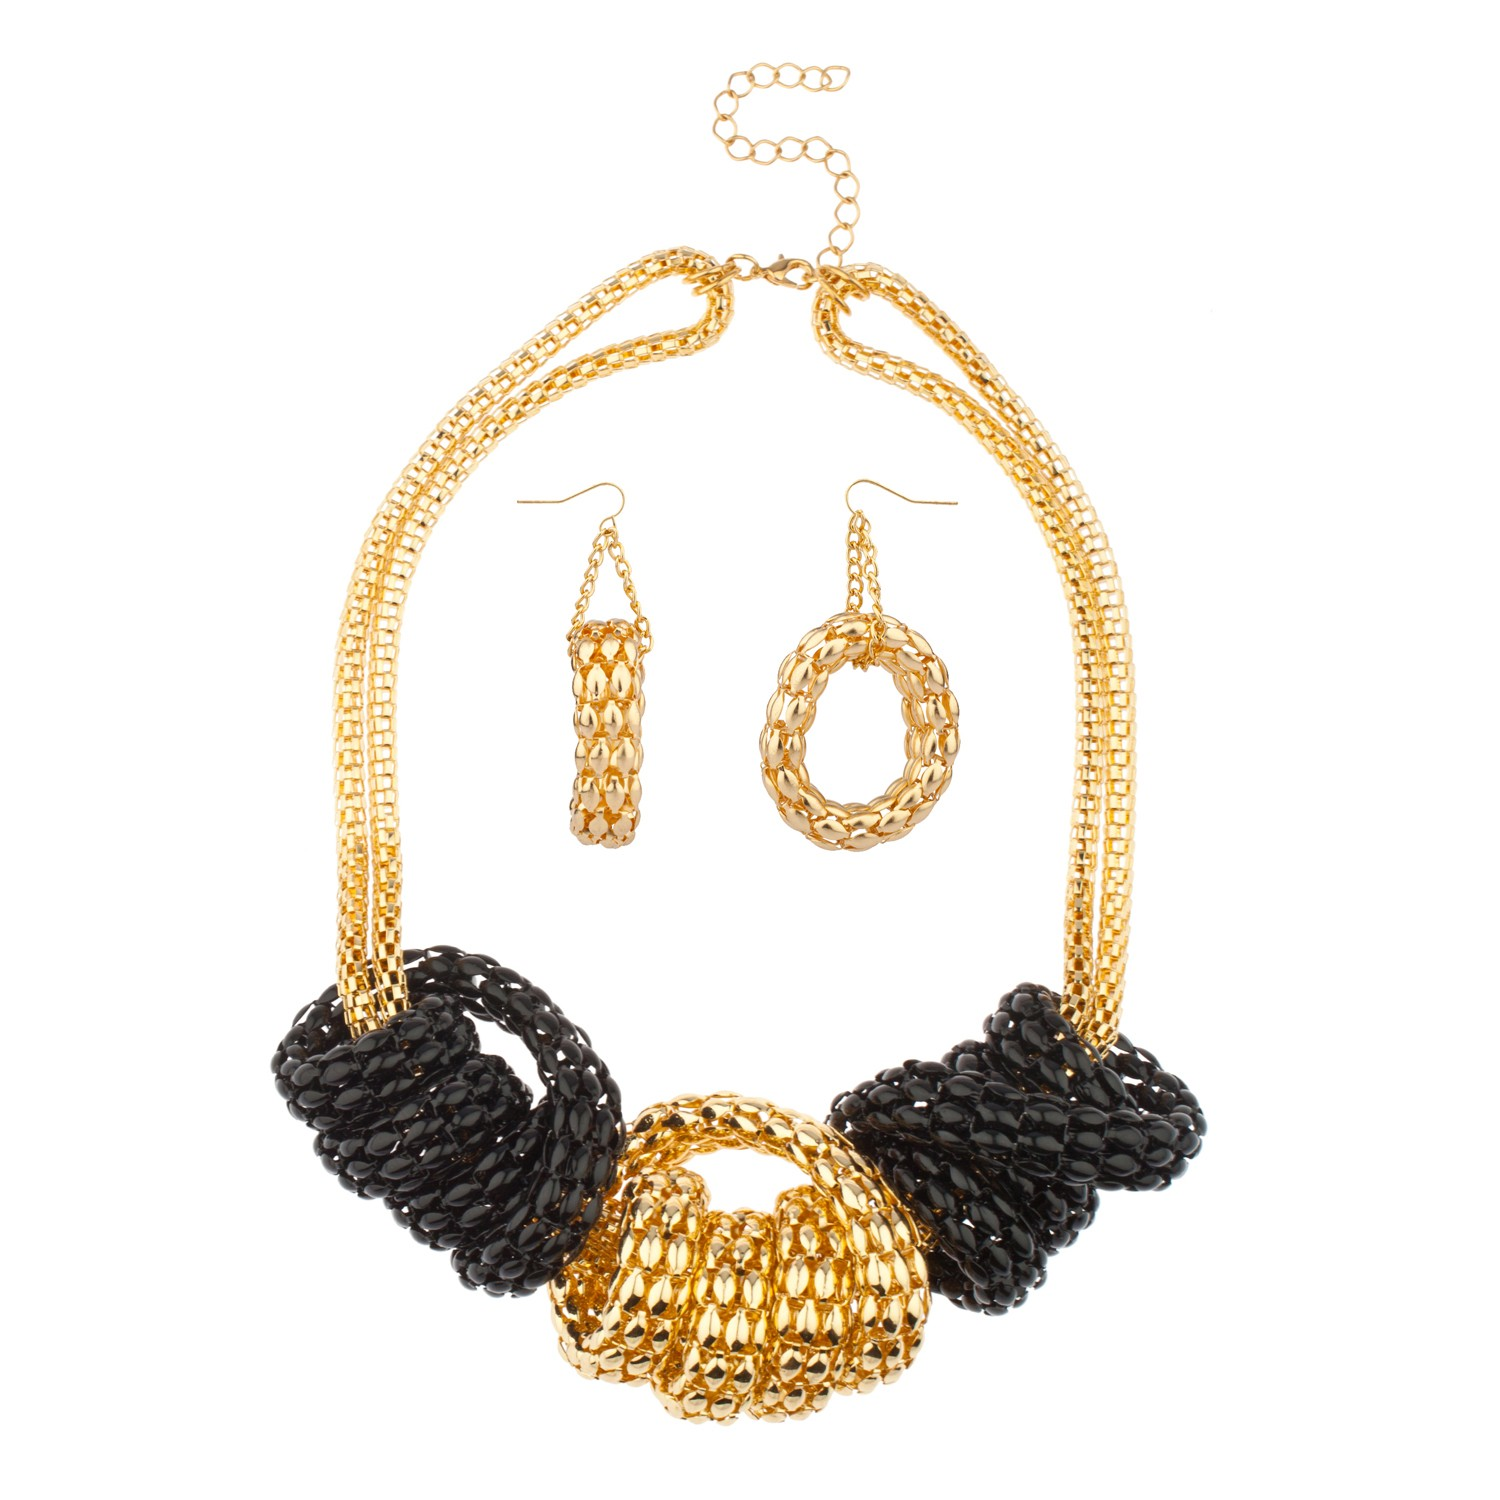 Black Chunky Chain Link Knot Necklace Matching Earrings ...